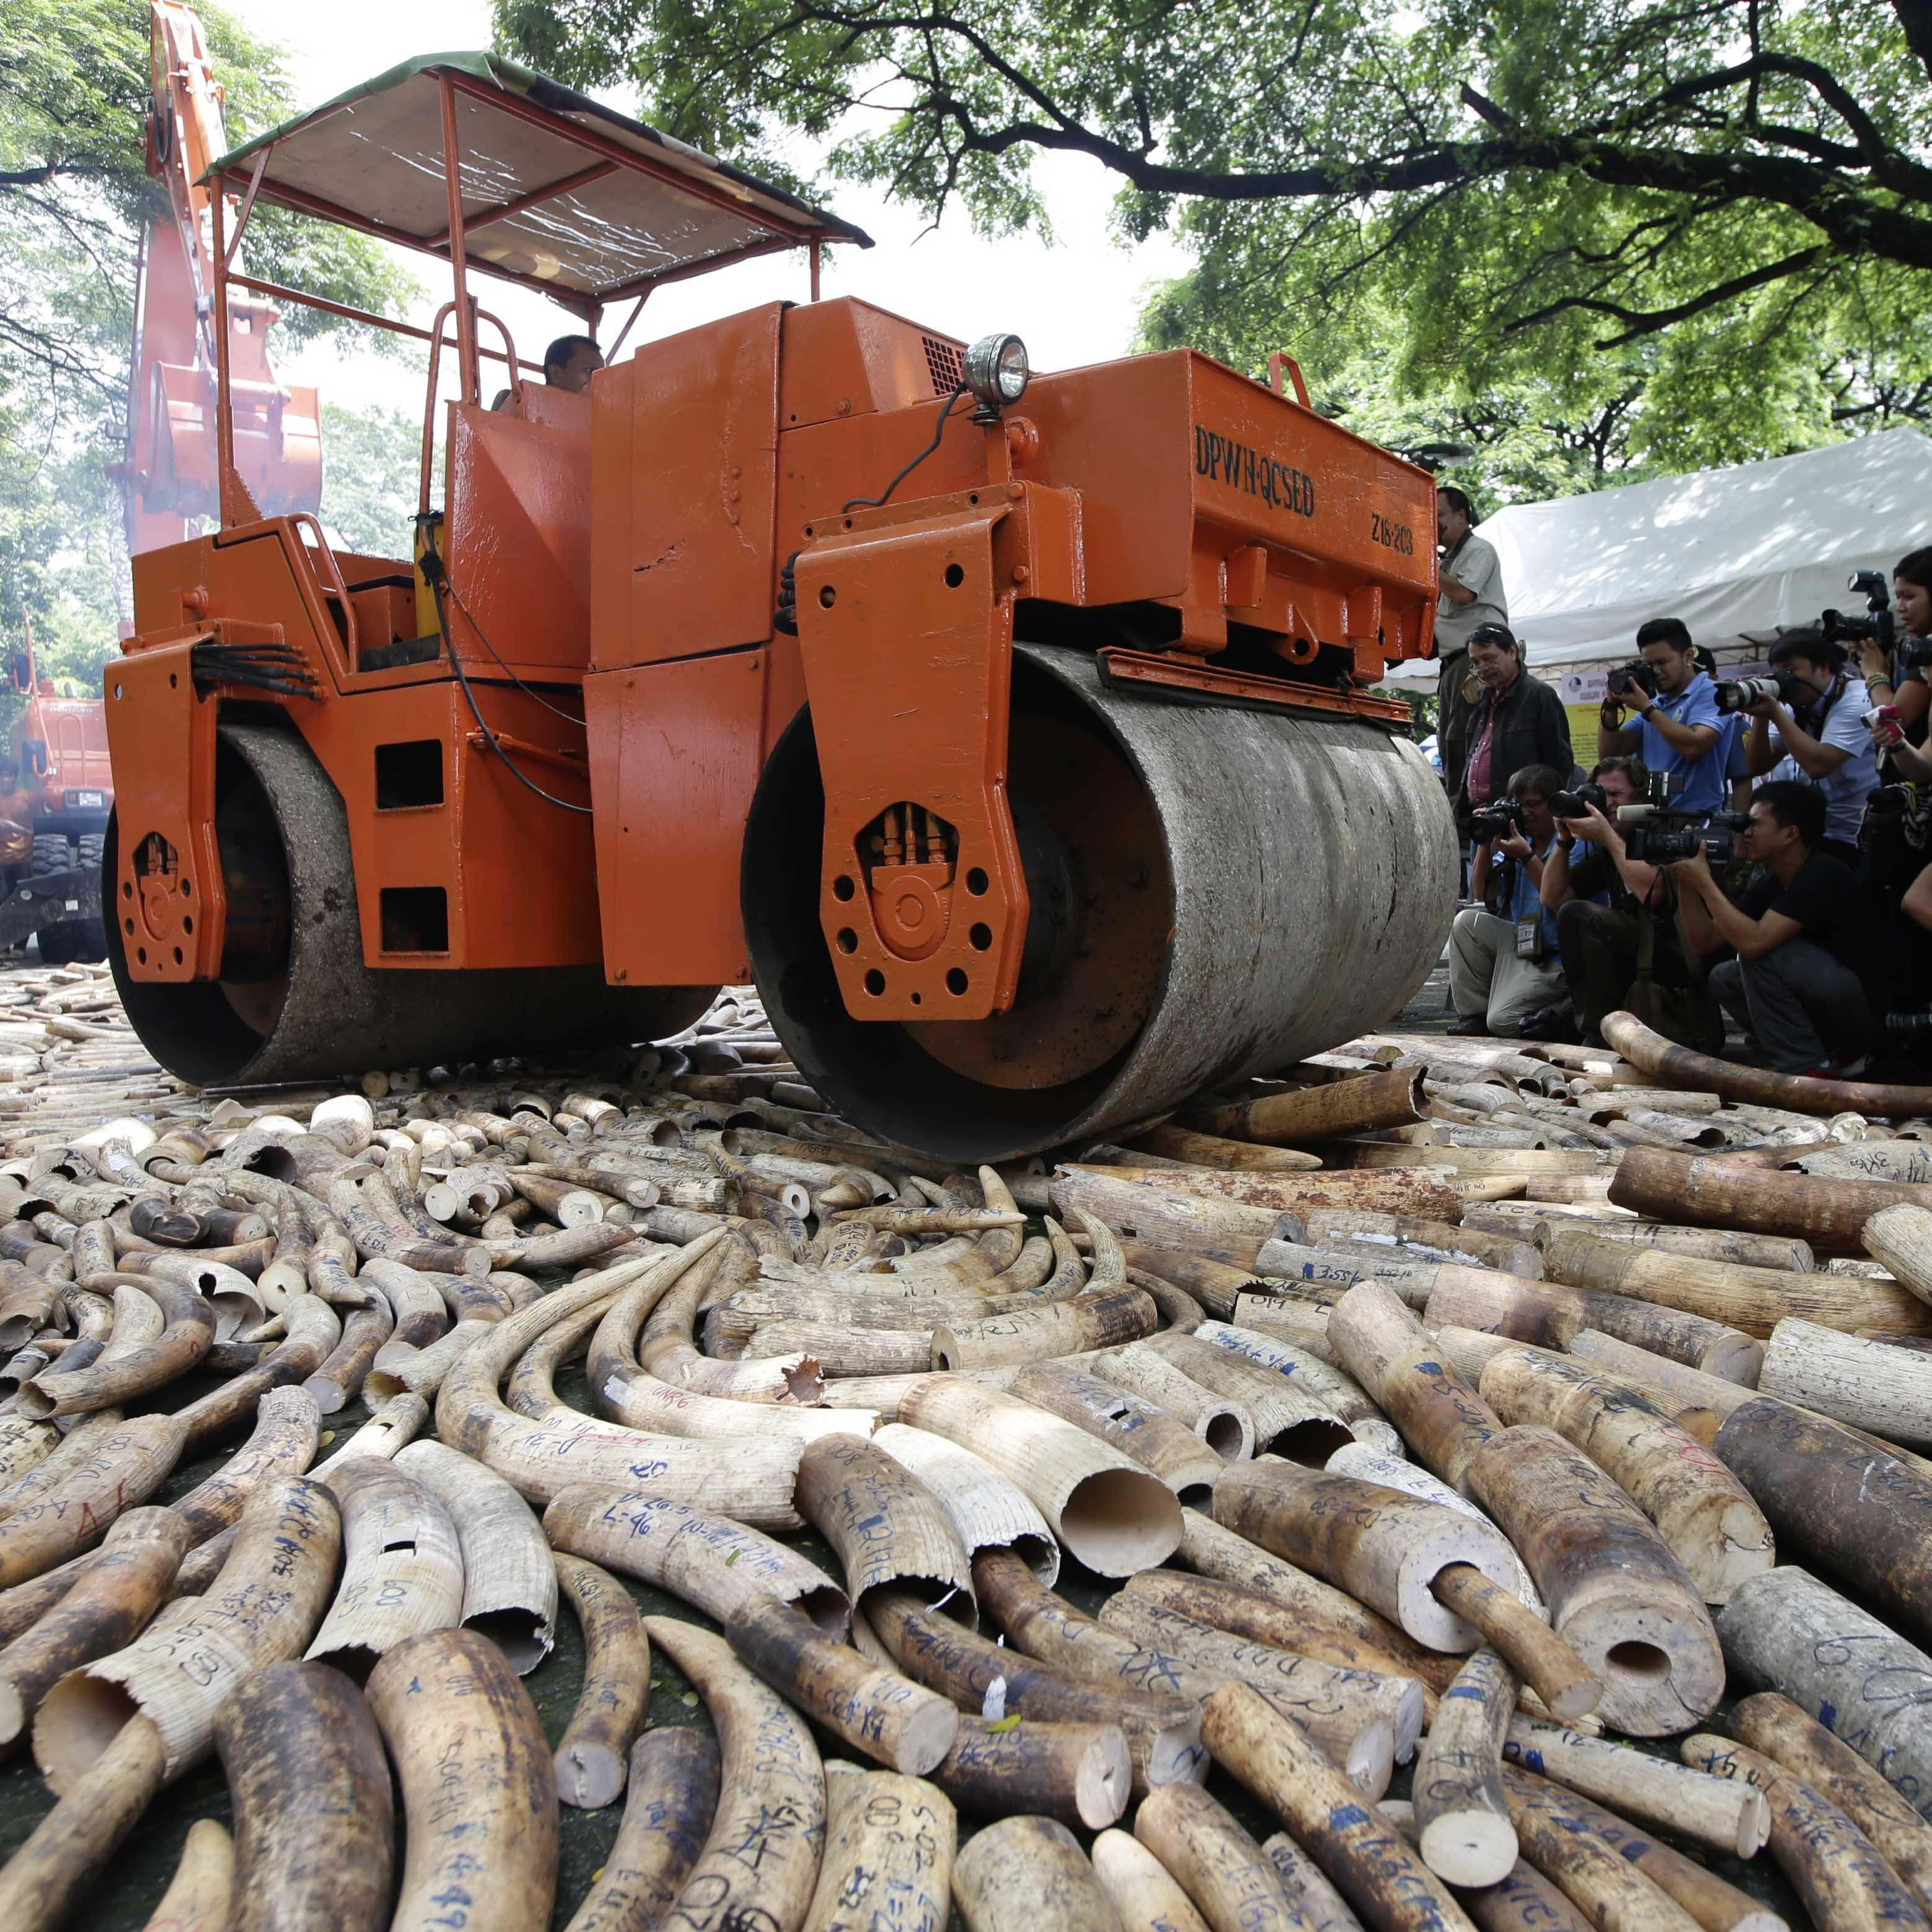 Seized elephant tusks are crushed with a steamroller during a ceremony at the Protected Areas and Wildlife Bureau of the Department of Environment and Natural Resources in Quezon City, northeast of Manila, Philippines, on June 21.